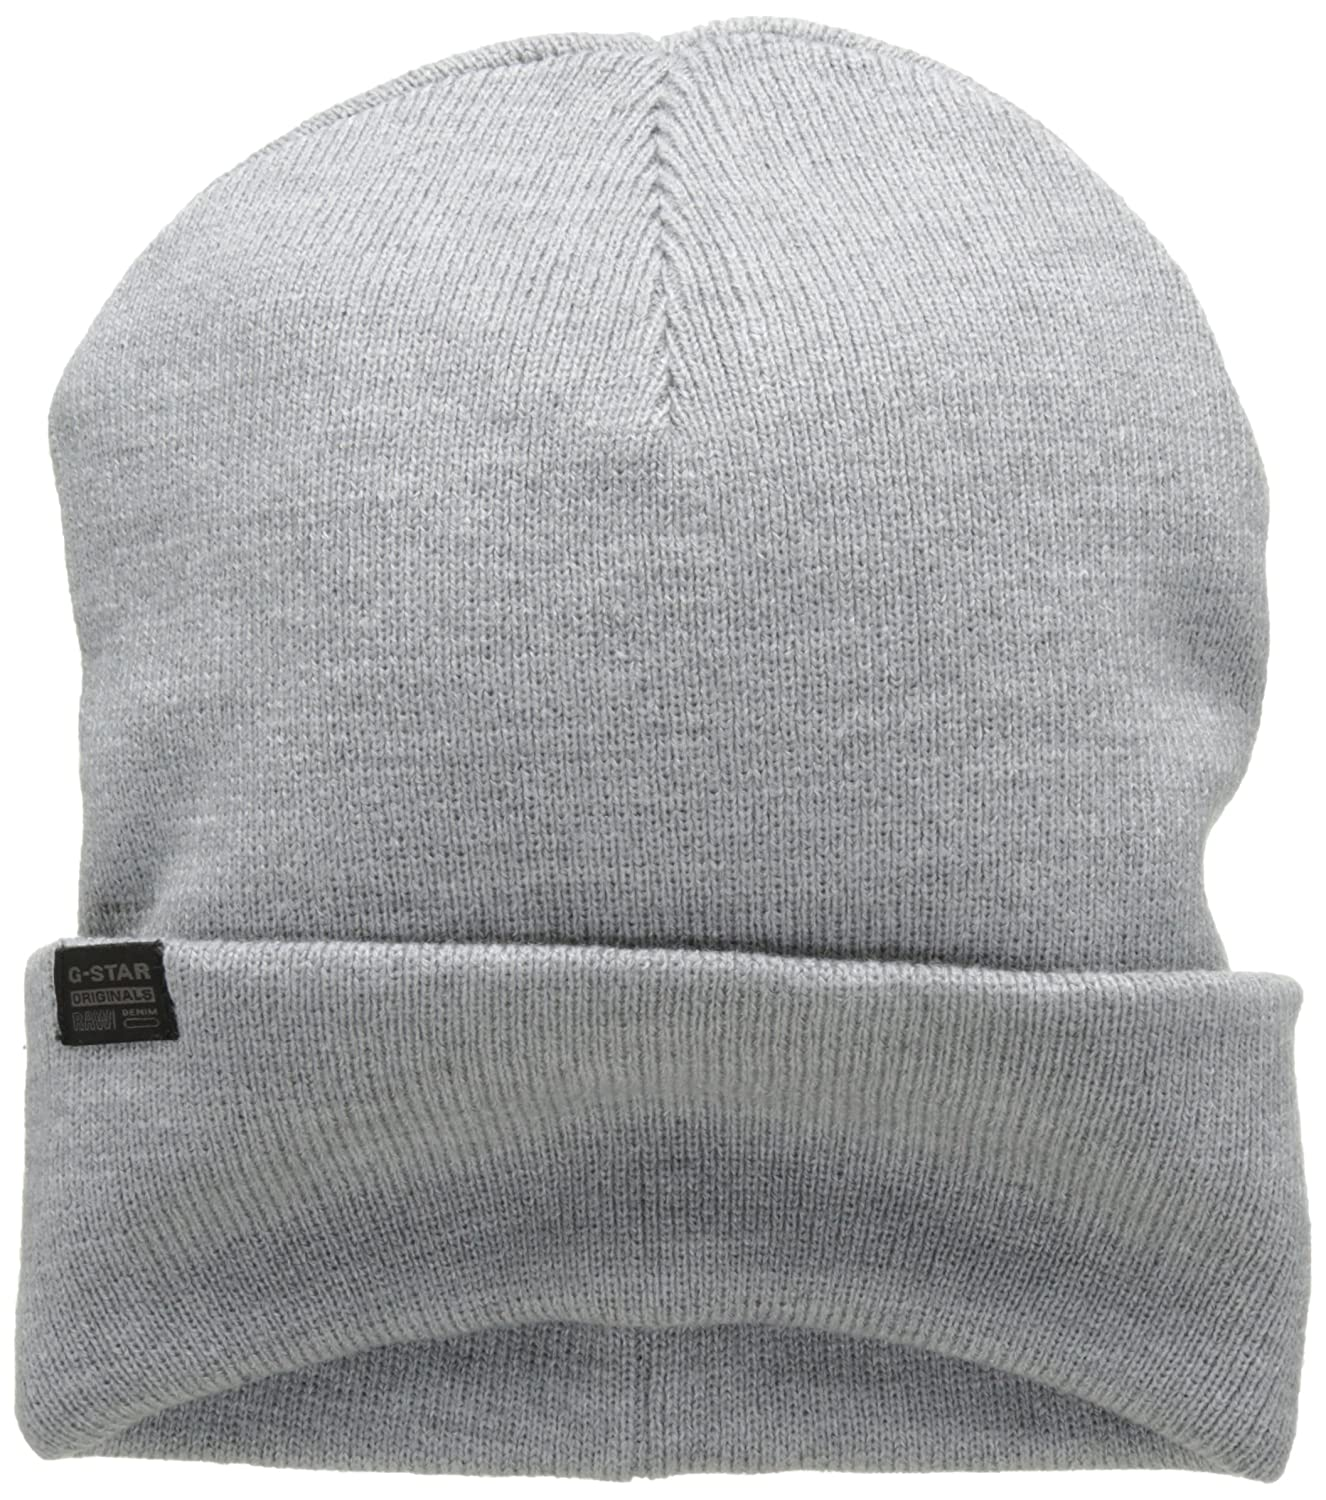 G-STAR RAW Men's Effo Sp Skullies and Beanies (Mazarine Blue) One Size D04255-K027-4213